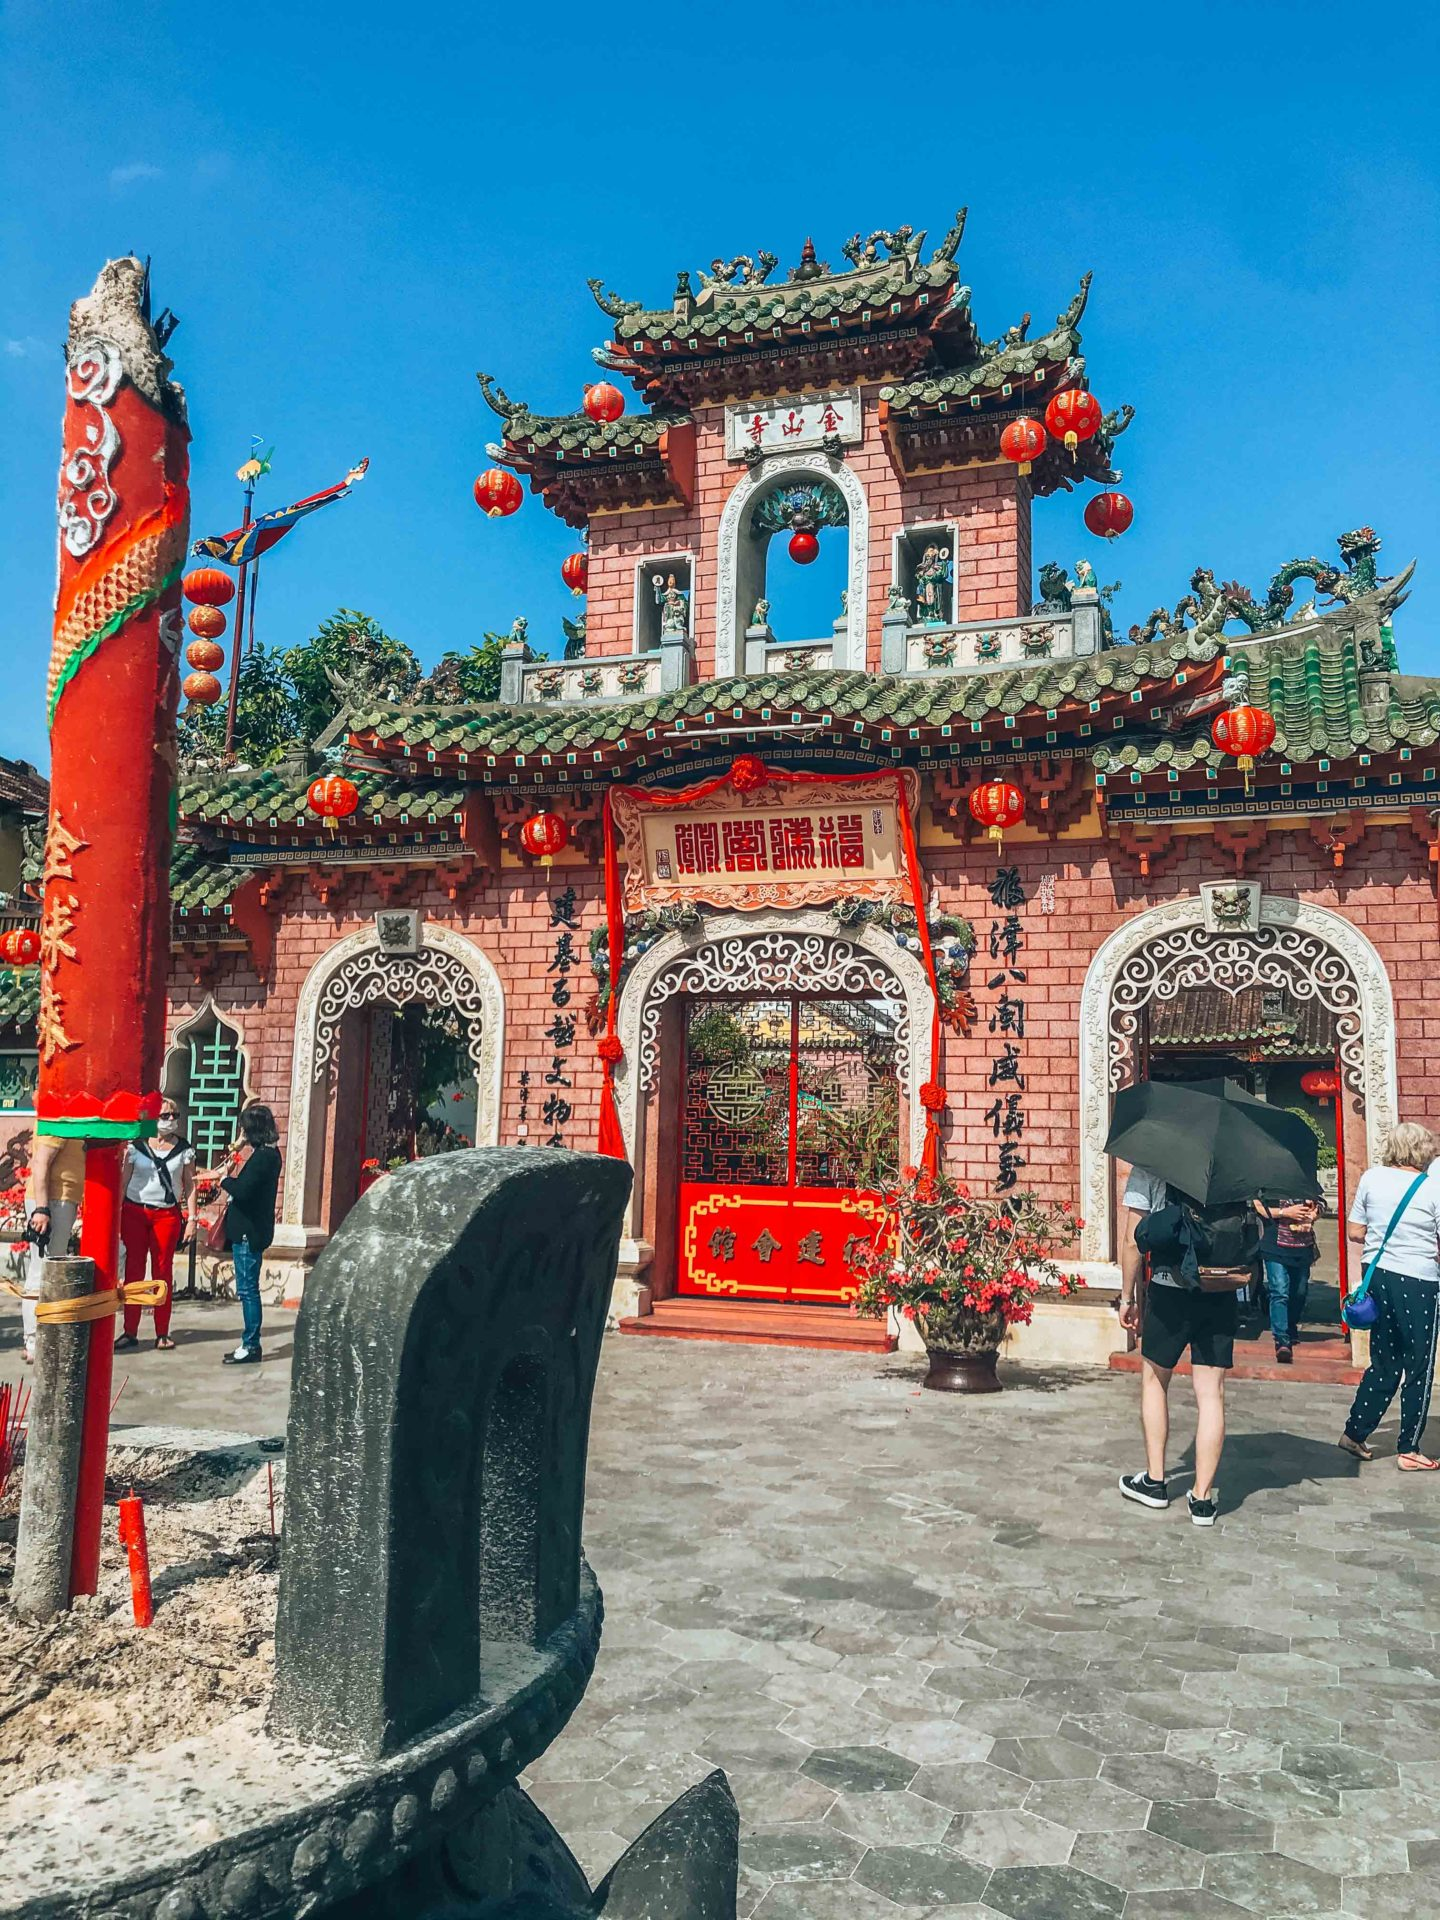 Fujian Chinese Assembly Hall gate, historical monument in Hoi An